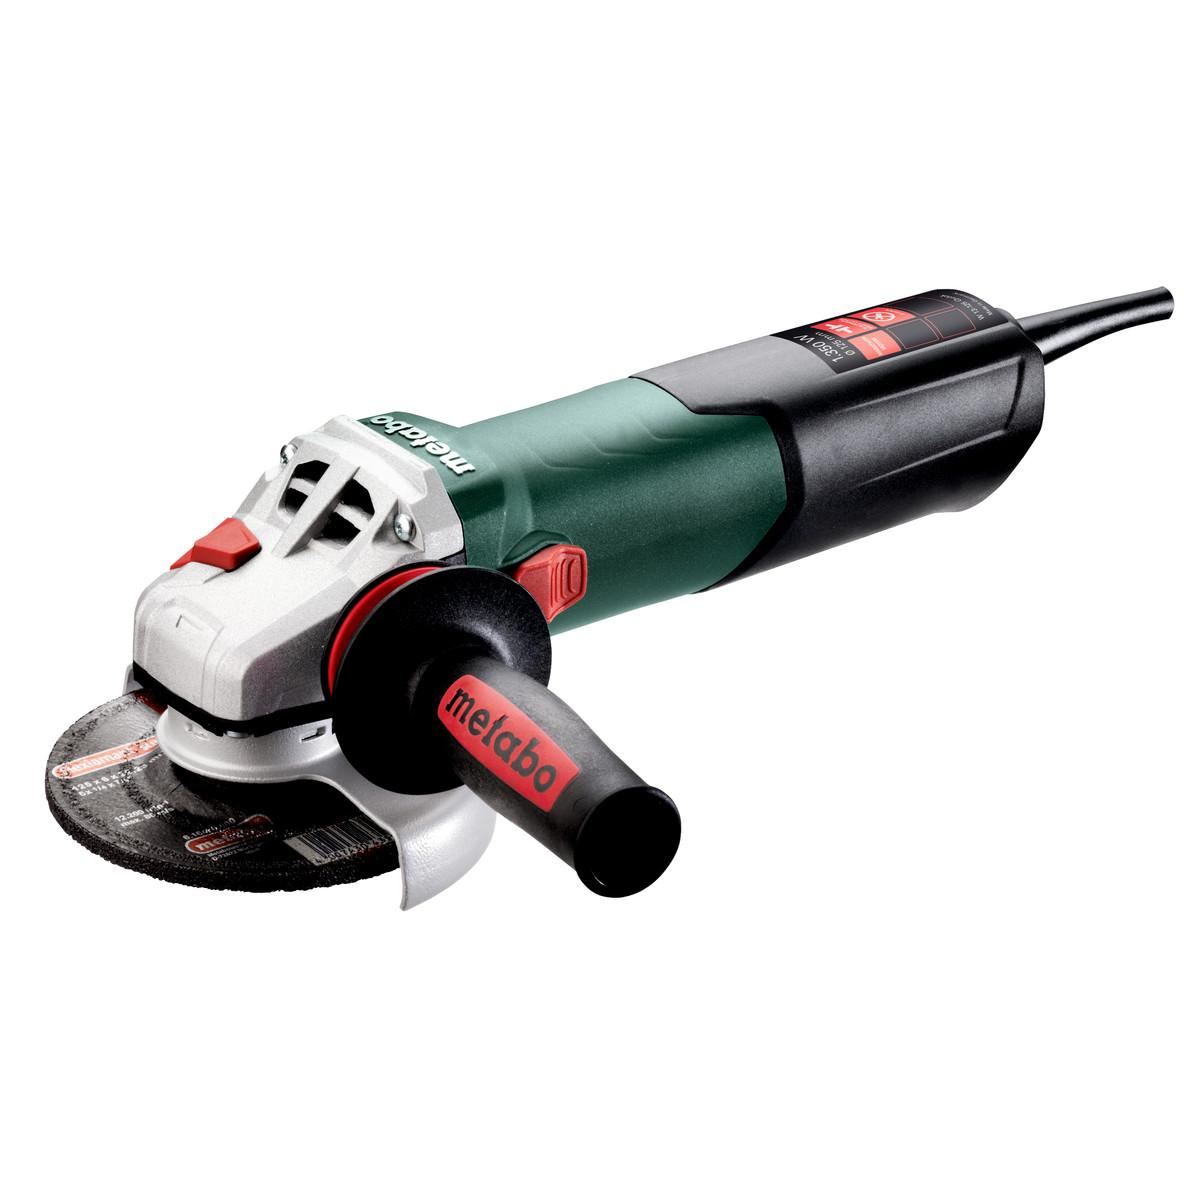 W 13-125 QUICK ANGLE GRINDER VAR.SPEED